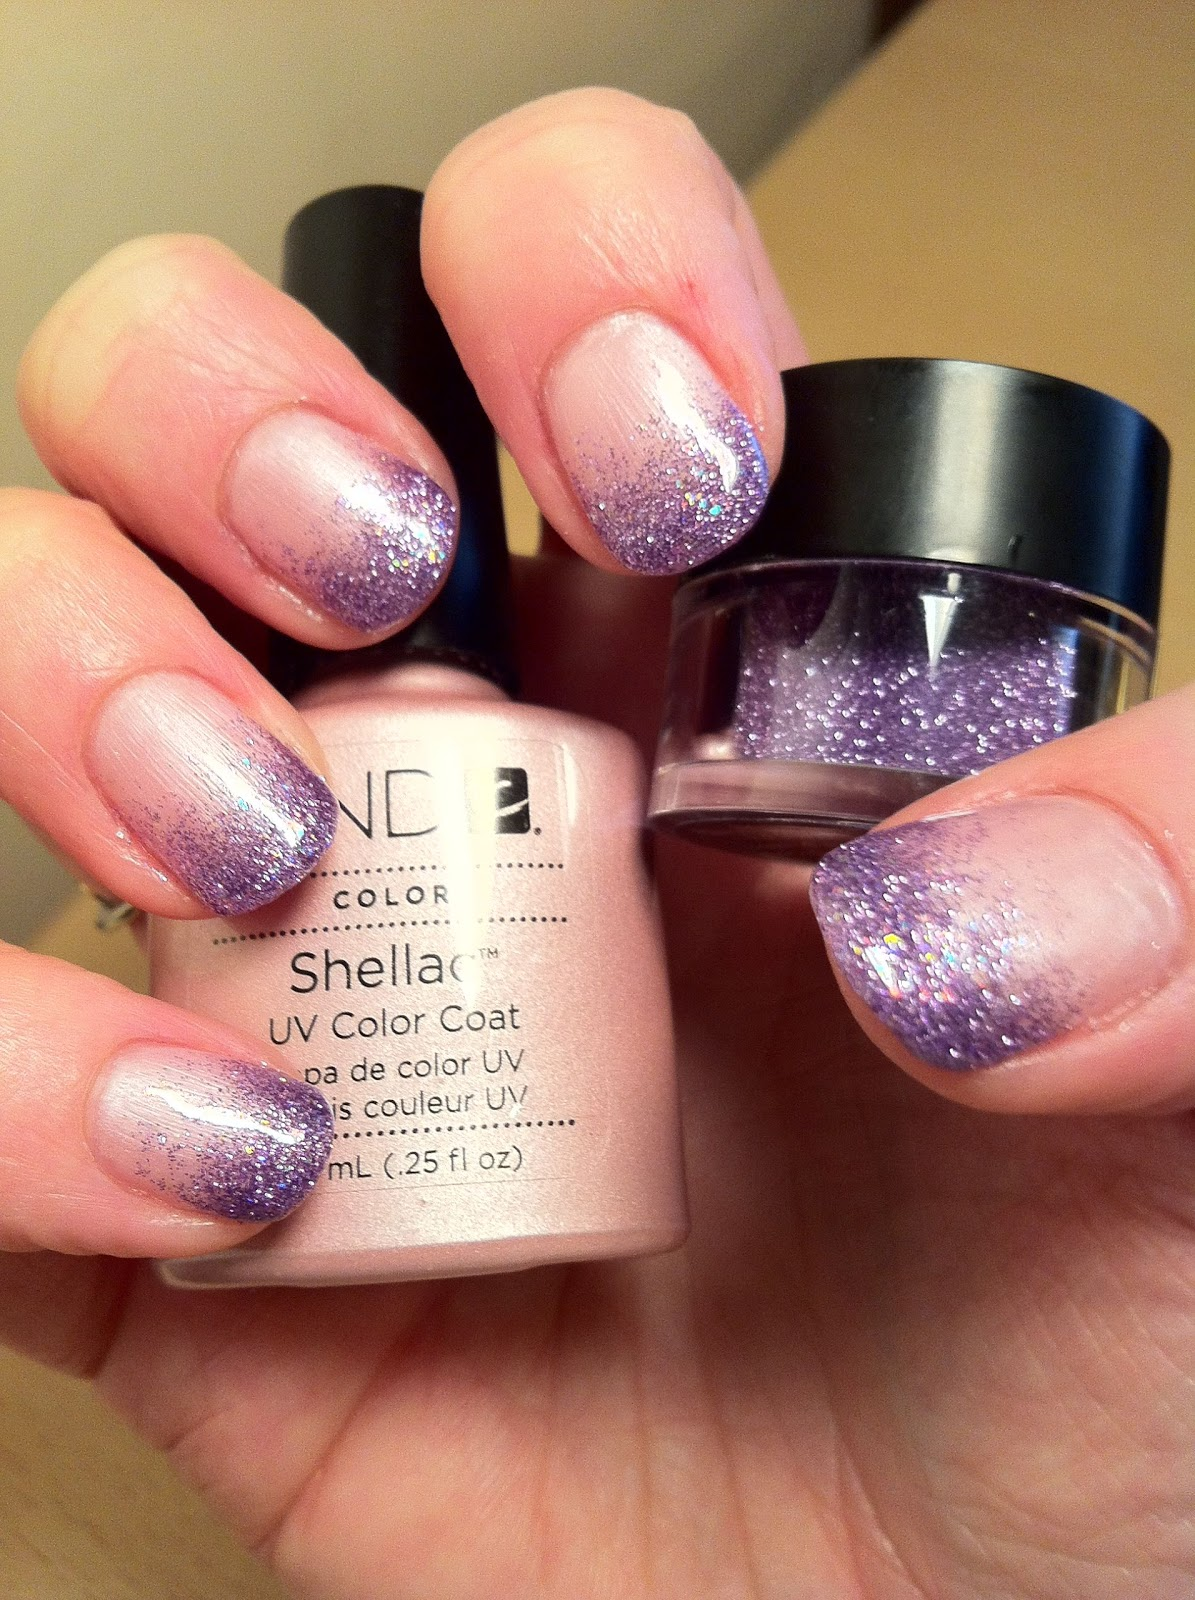 Brush up and Polish up!: CND Shellac Nail Art - Glitter Fade Barbie